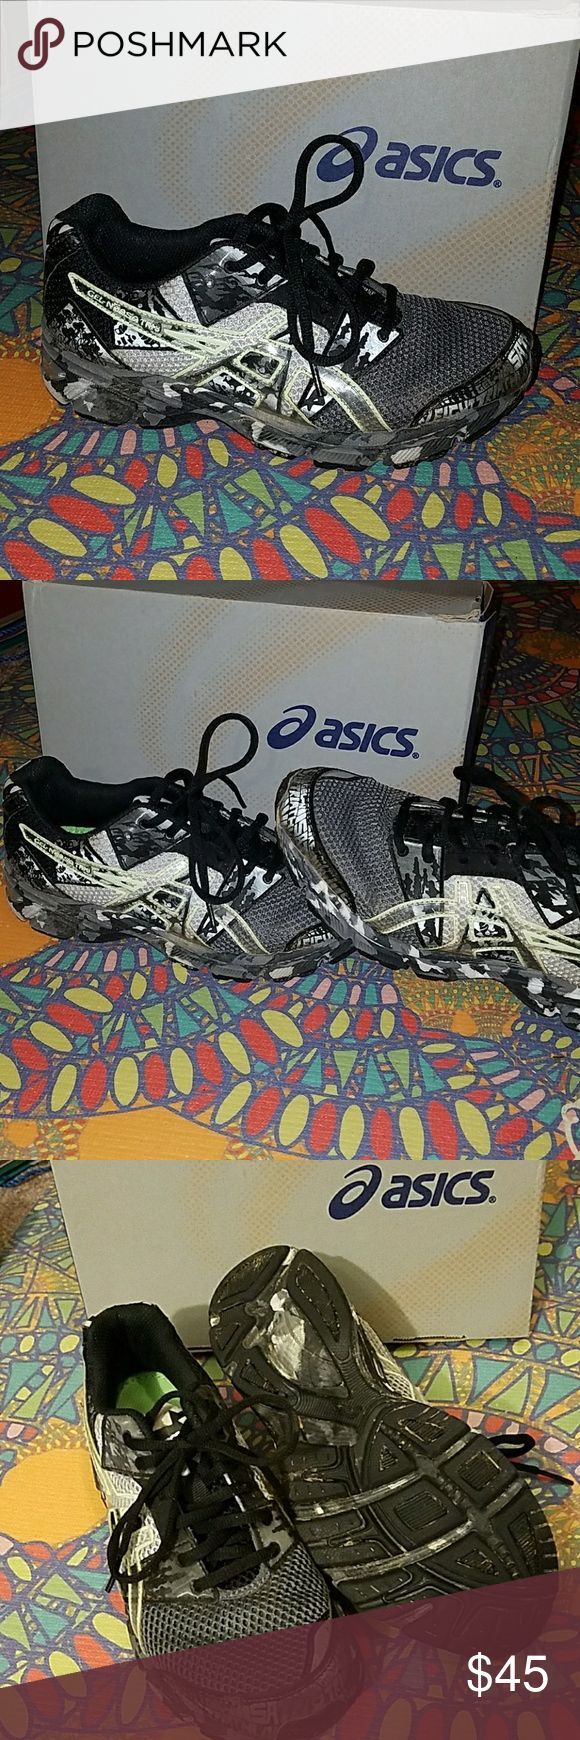 ASICS running shoes Worn once on a trail, so there is a tiny bit of dirt on them but the sole is not compromised. Black and gray shoes with a camo sole. ASICS is a great running brand. 5.5Y fits a womens 7-7.5 comfortably. Asics Noosa is intended to be worn as a marathon shoe. Very supportive and durable.  FEEL FREE TO MAKE AN OFFER! Asics Shoes Sneakers